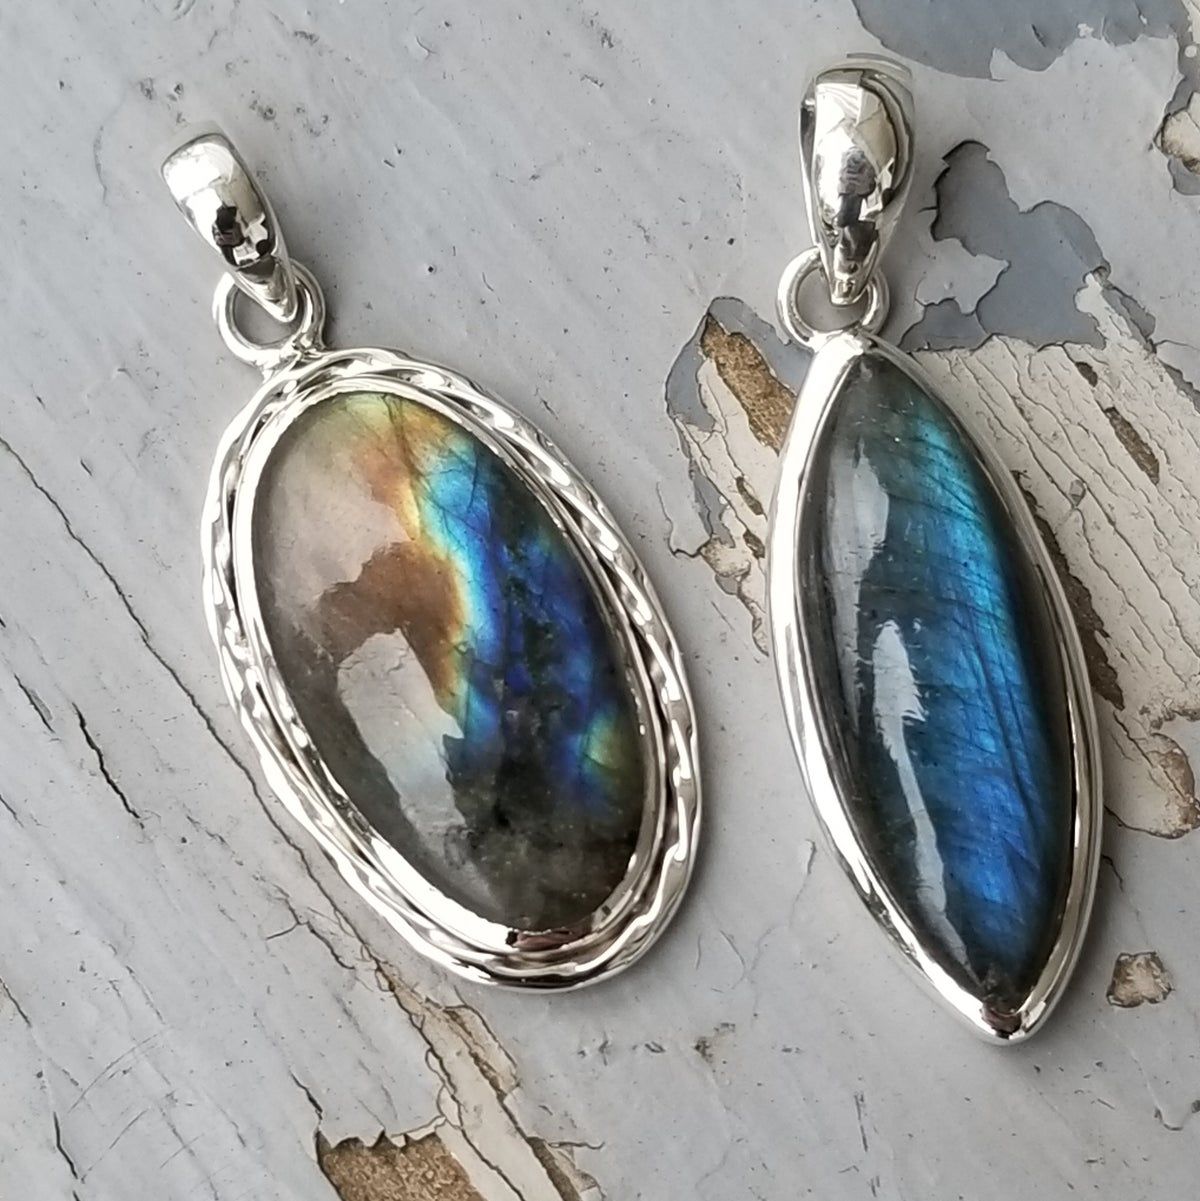 Image of Aurora Pendant Collection - Labradorite in Sterling